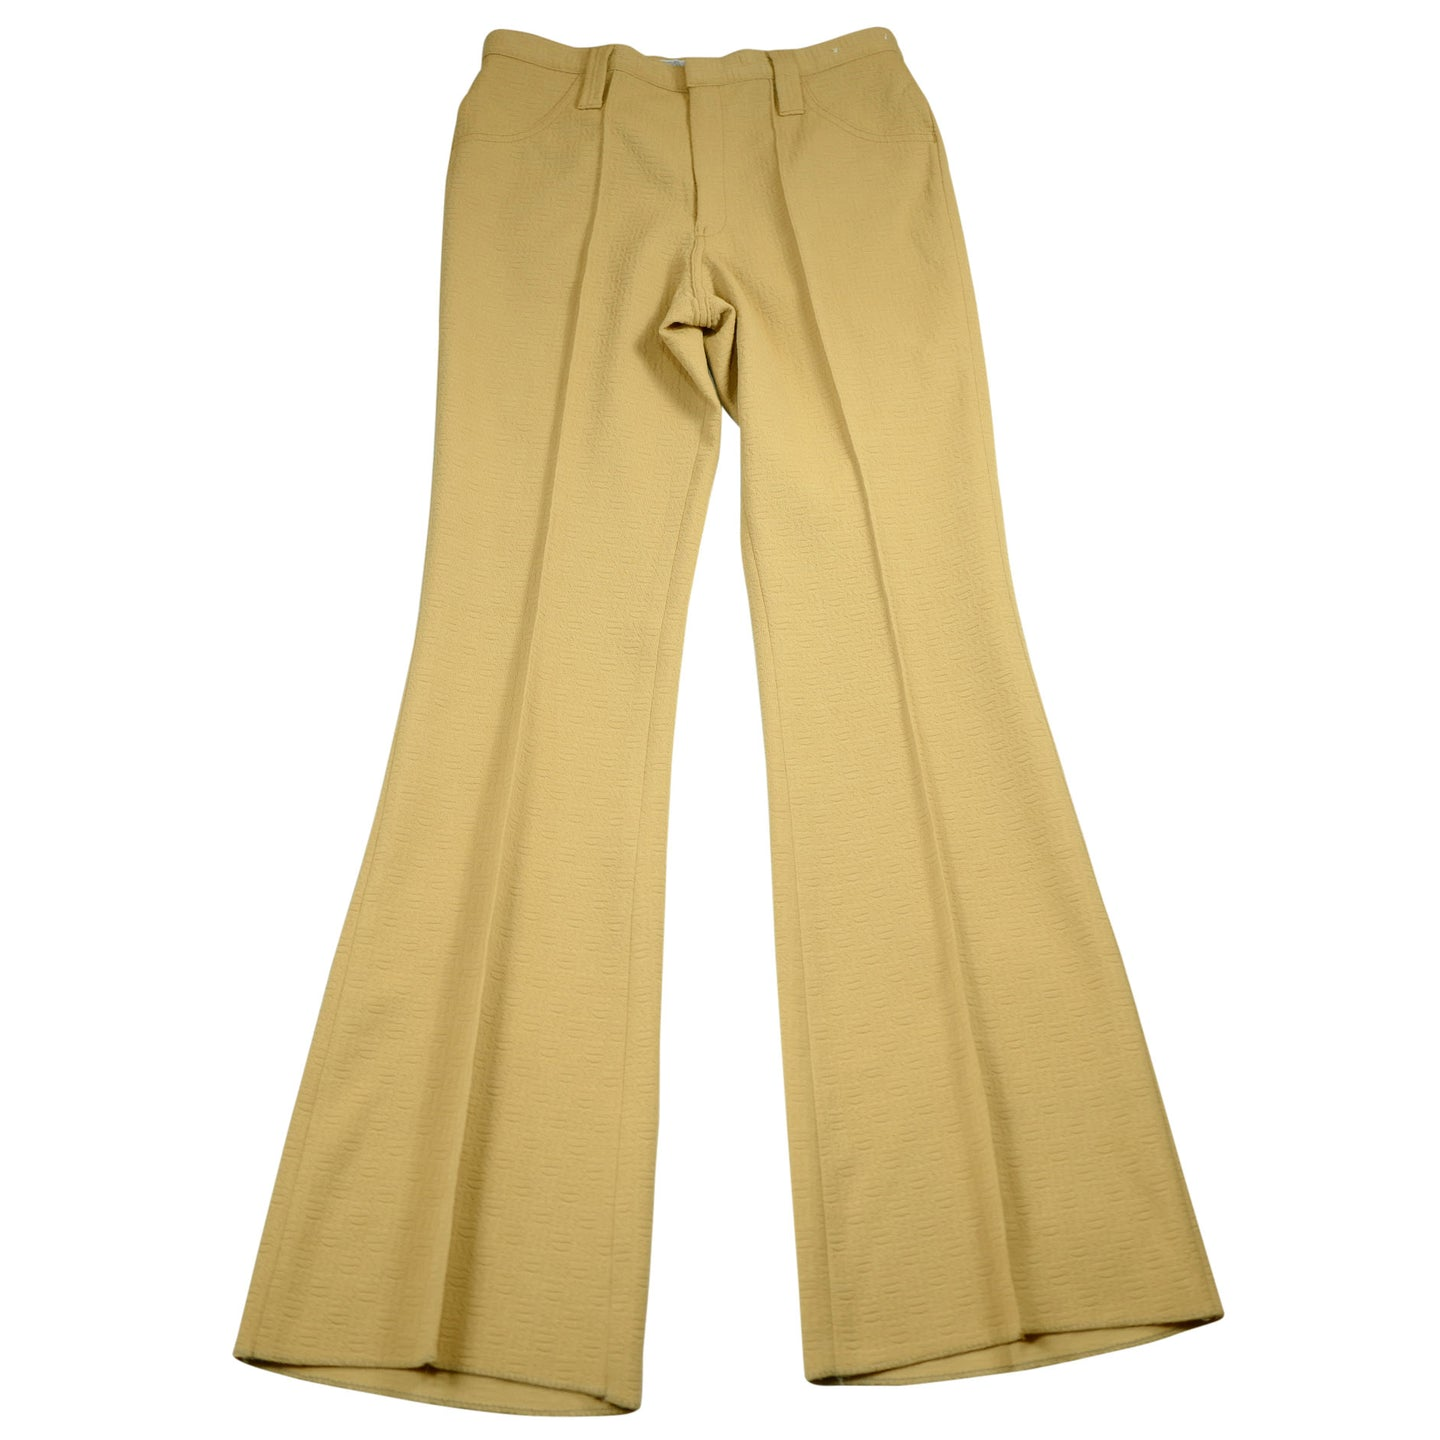 Vintage Tan HBarC Ranchwear Tomboy Pants